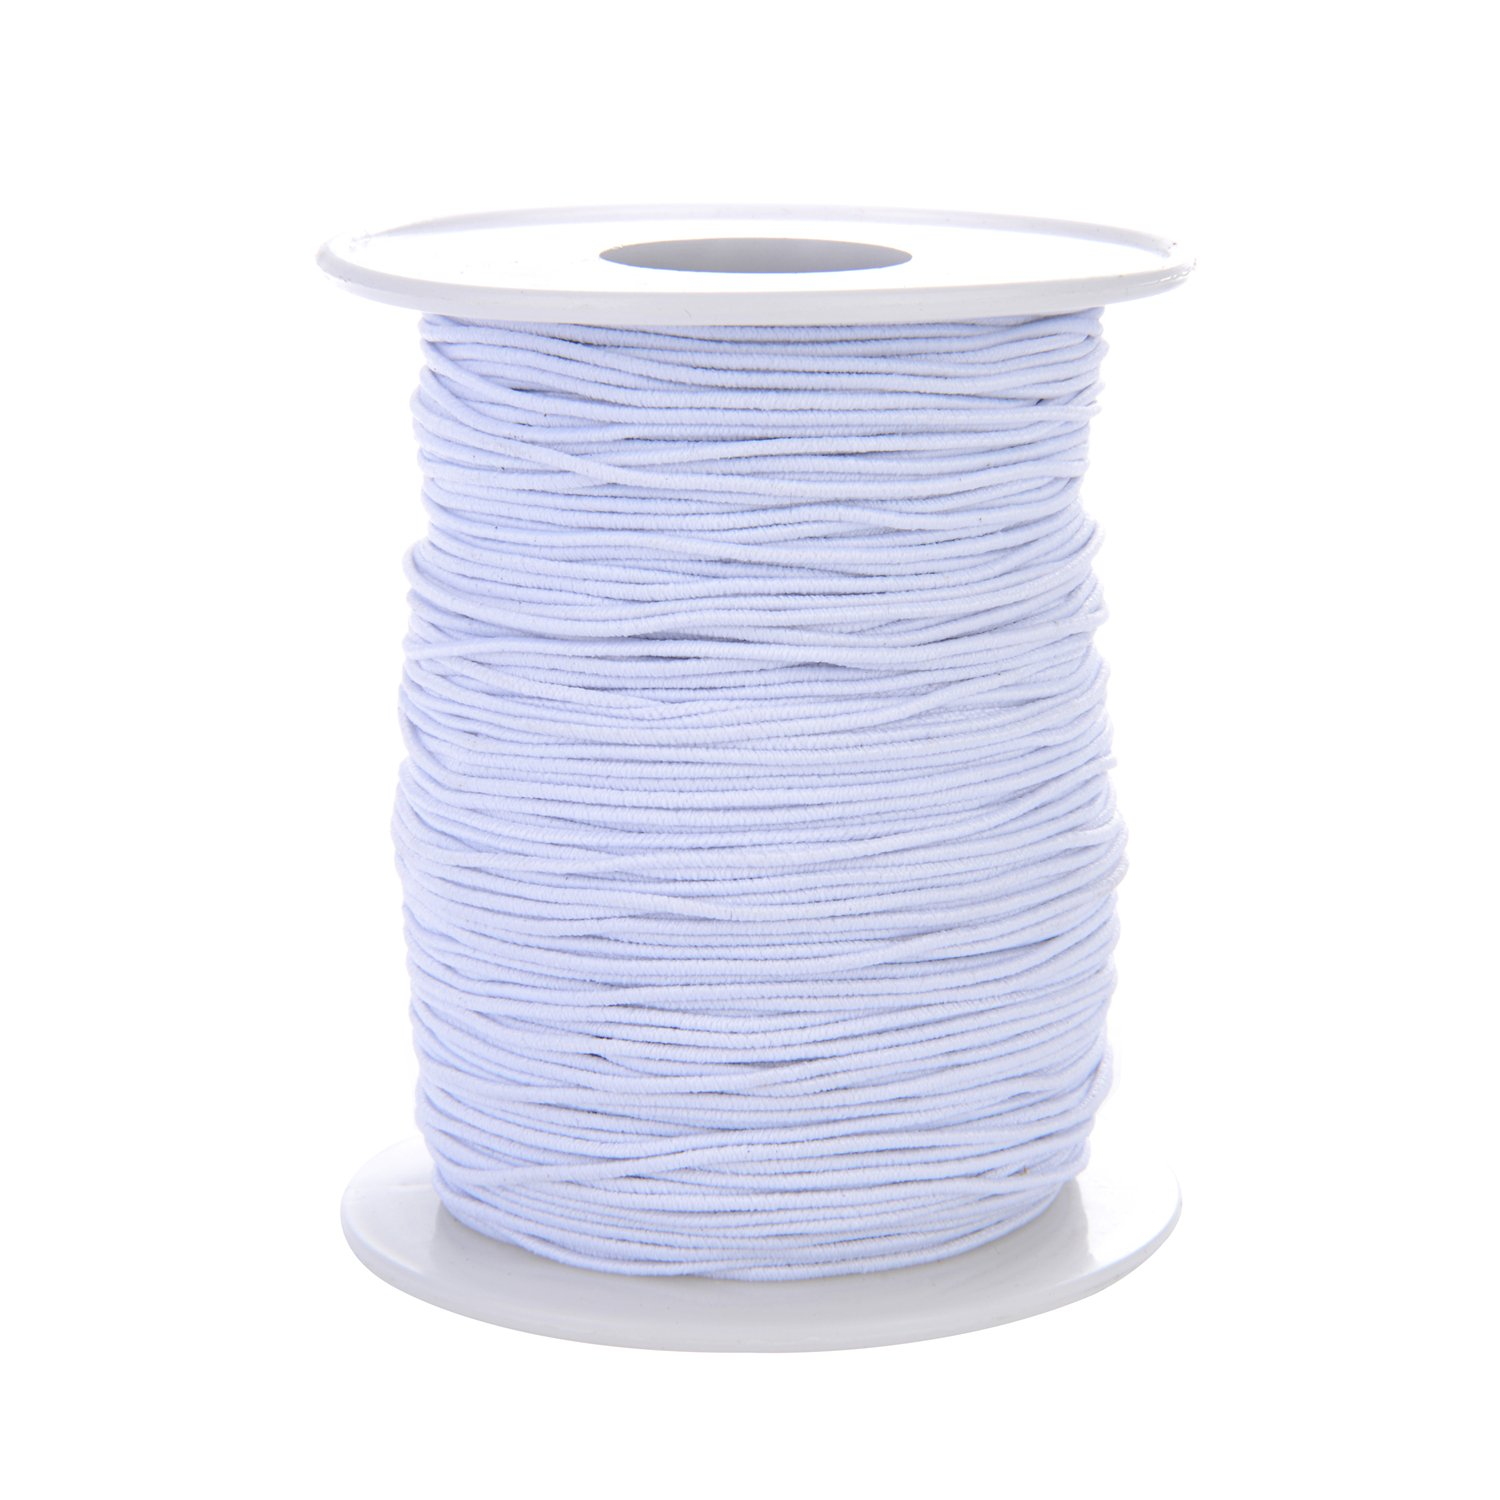 Tubala 0.8 mm Elastic Cord Stretch Thread Beading Cord Fabric Crafting Thread White Elastic String Jewelry Making Bracelet Beading Thread, 100 Meters 4336807133